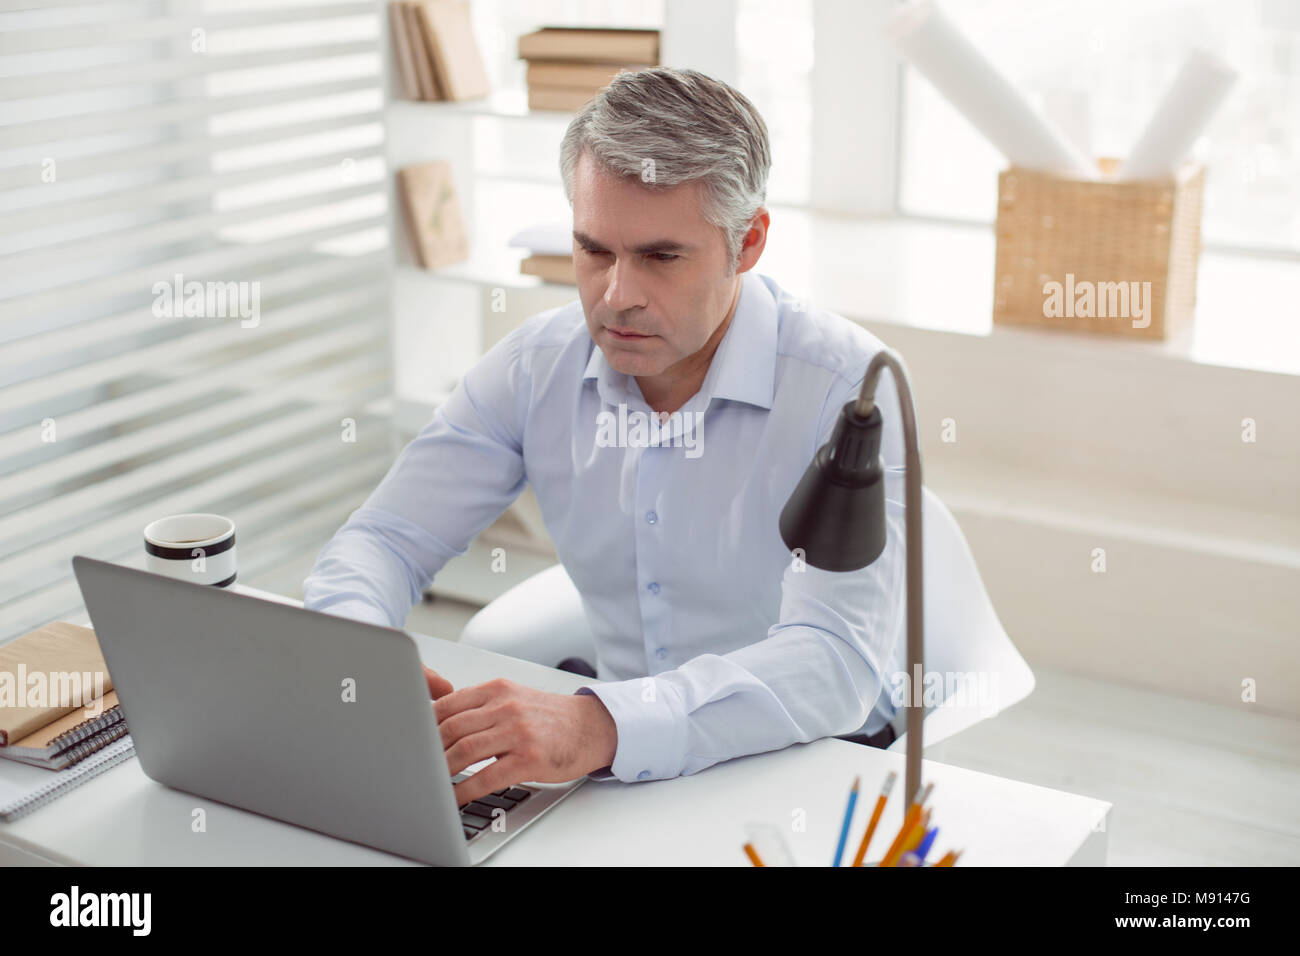 Serious handsome man working on the laptop - Stock Image